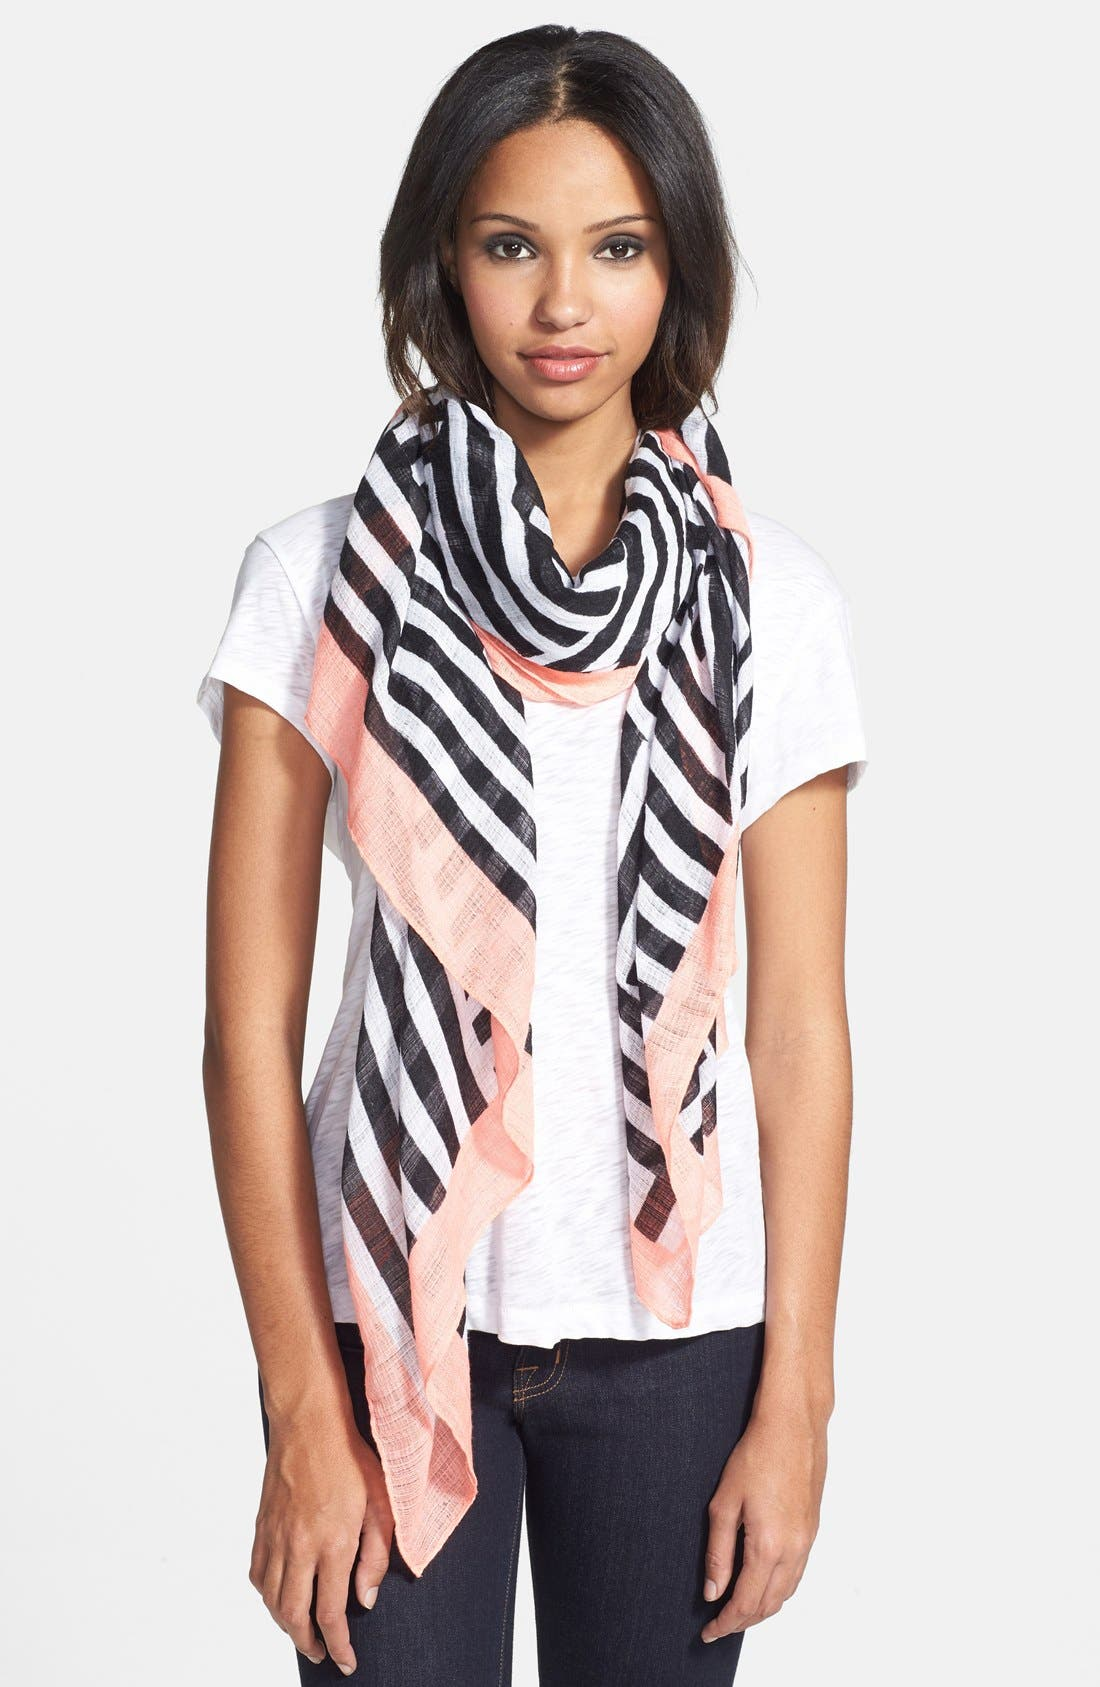 neration 'Who's the Boss' Scarf,                             Main thumbnail 1, color,                             102